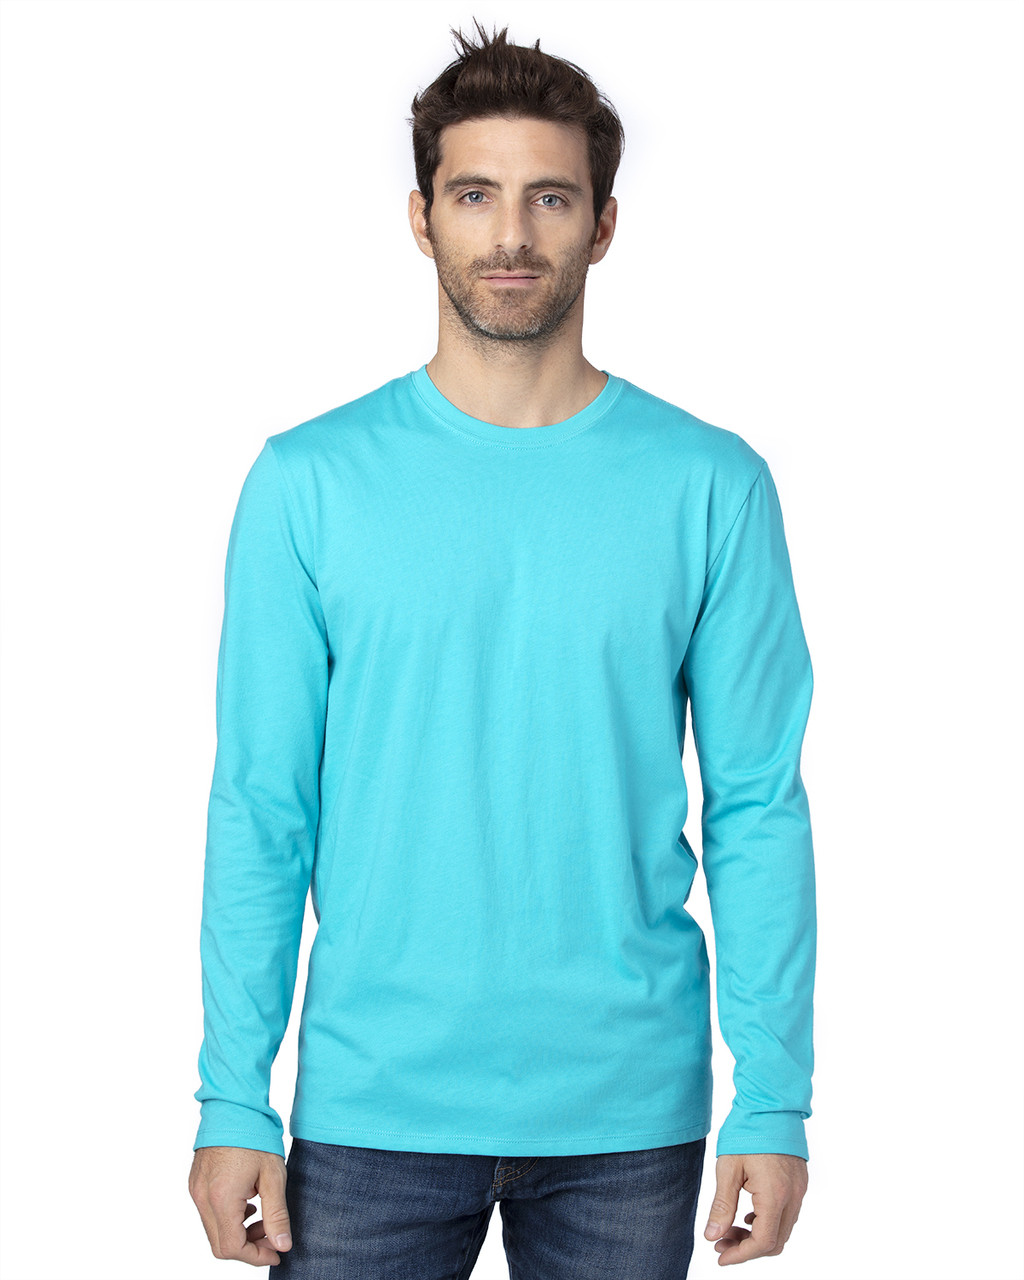 Pacific Blue - 100LS Threadfast Unisex Ultimate Long-Sleeve T-Shirt | T-shirt.ca